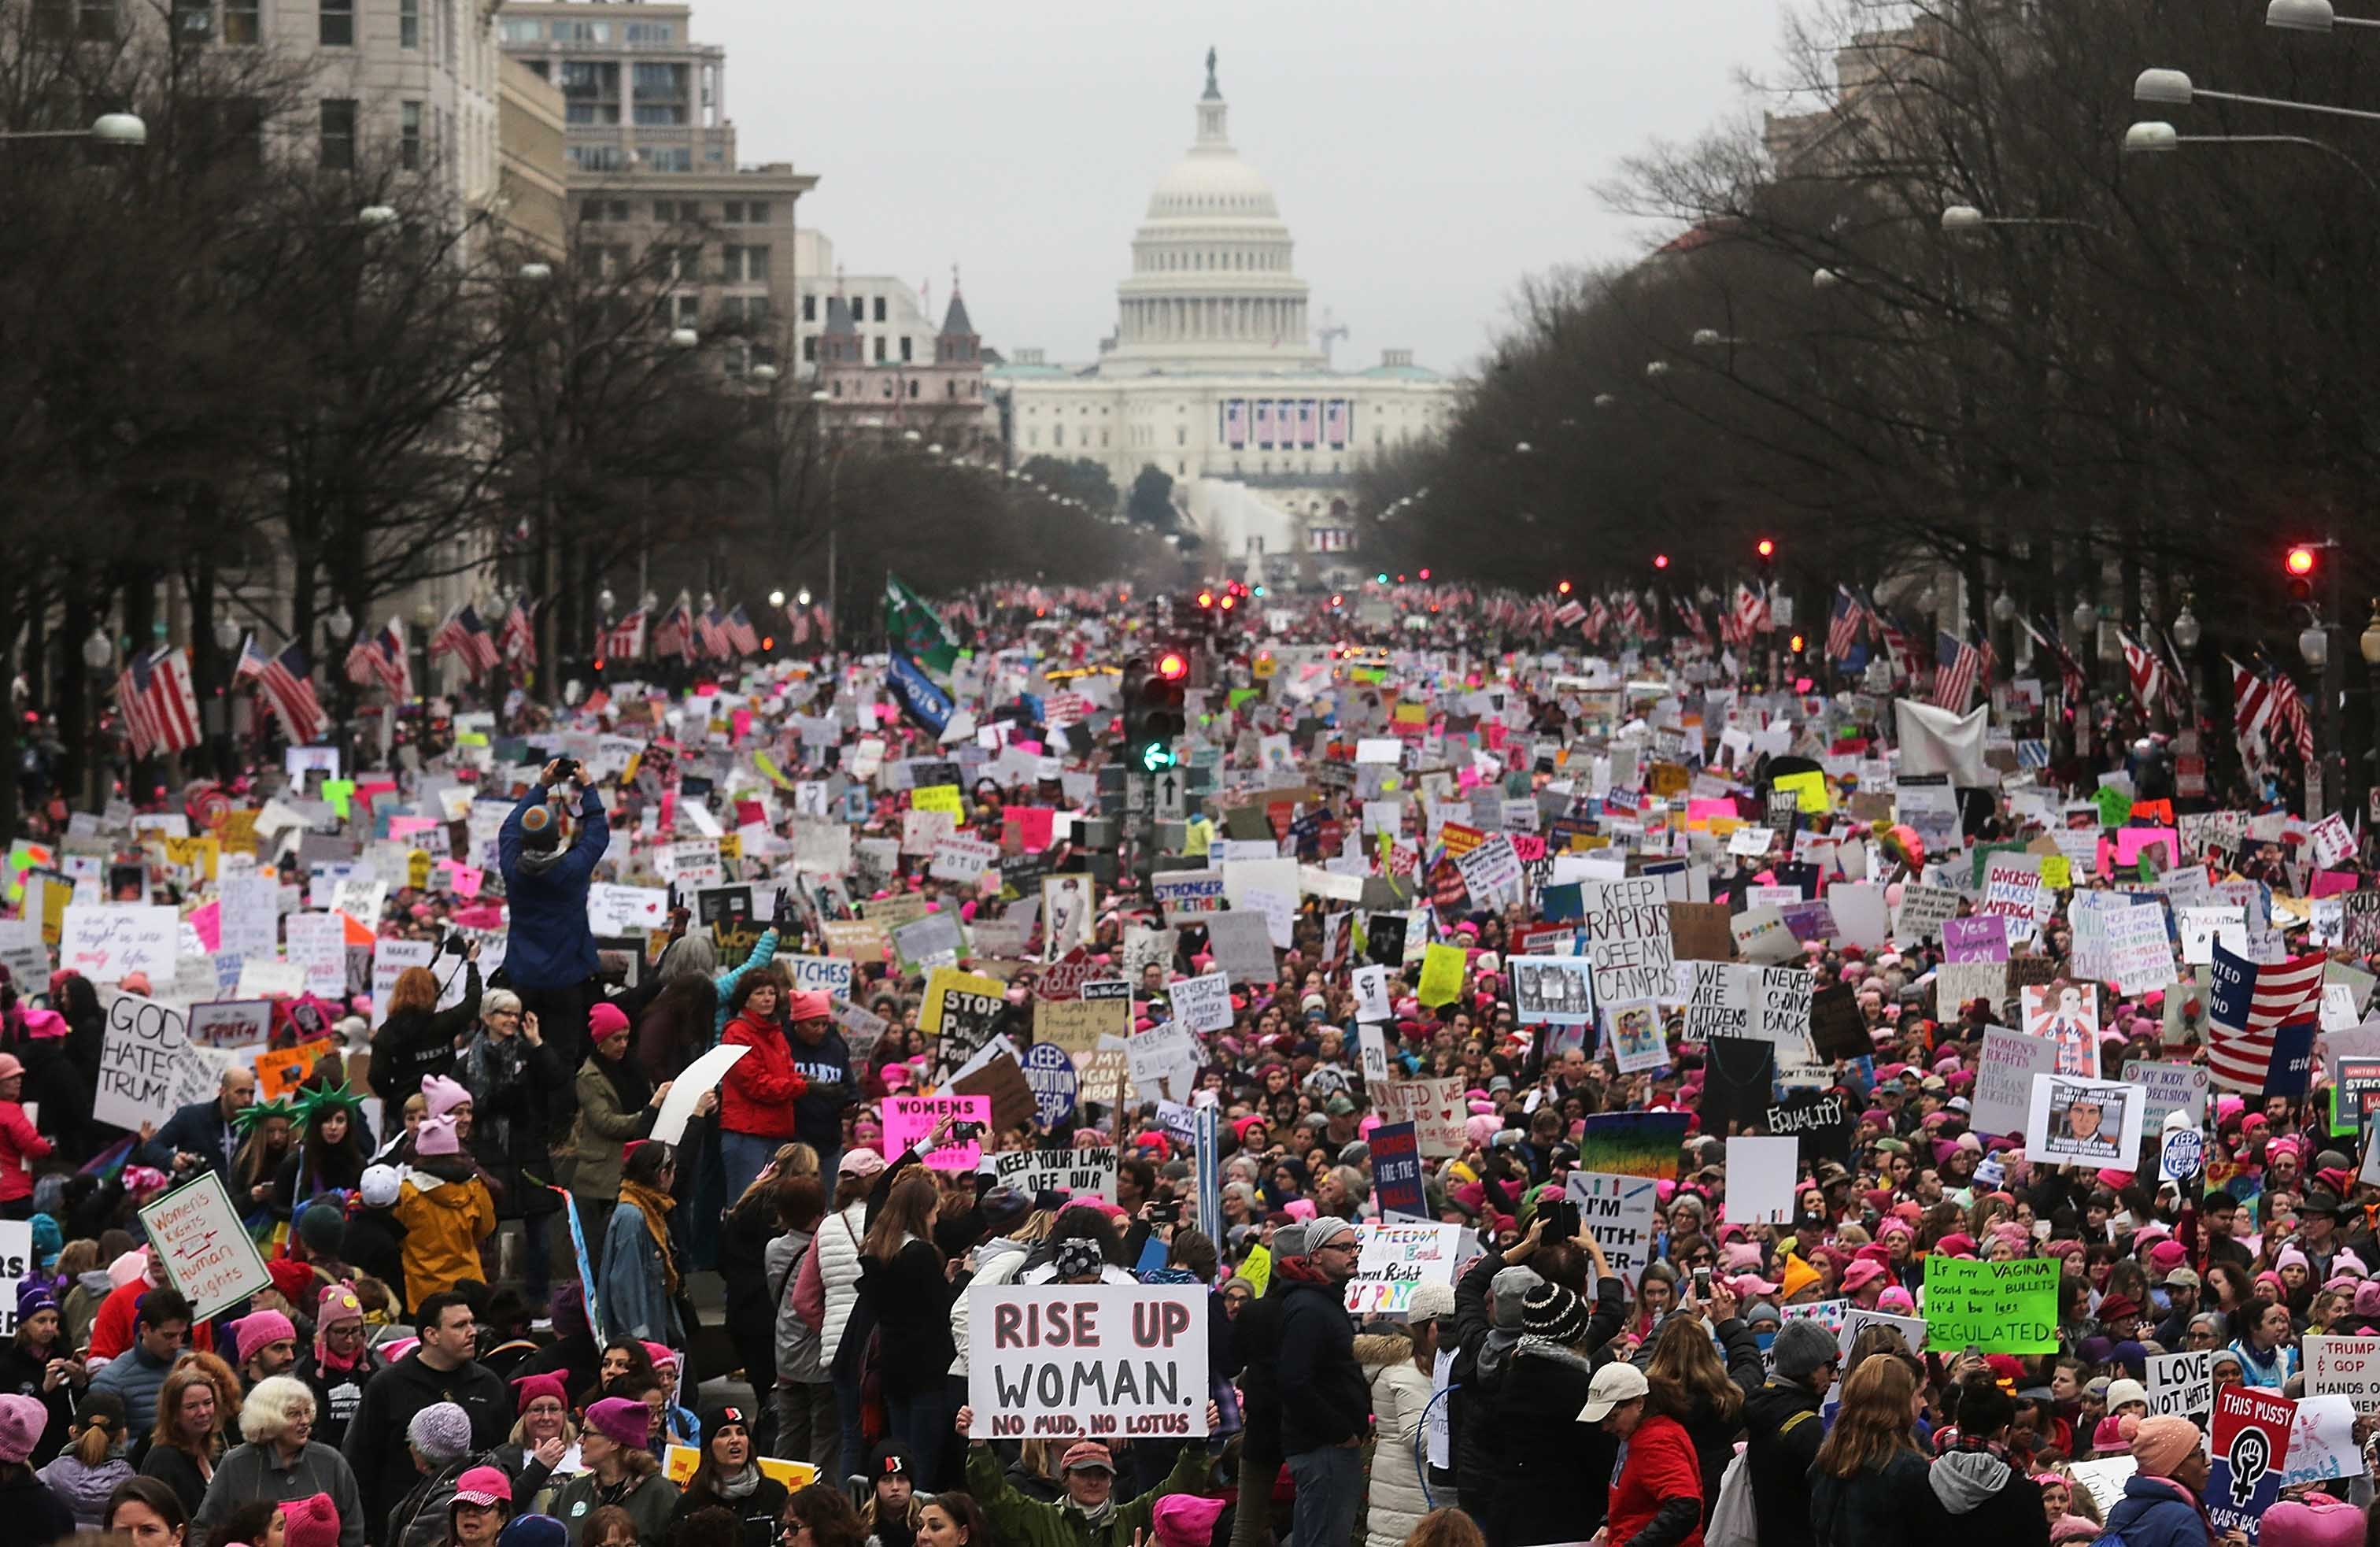 Protesters walk during the Women's March on Washington on January 21, 2017 in Washington, DC.